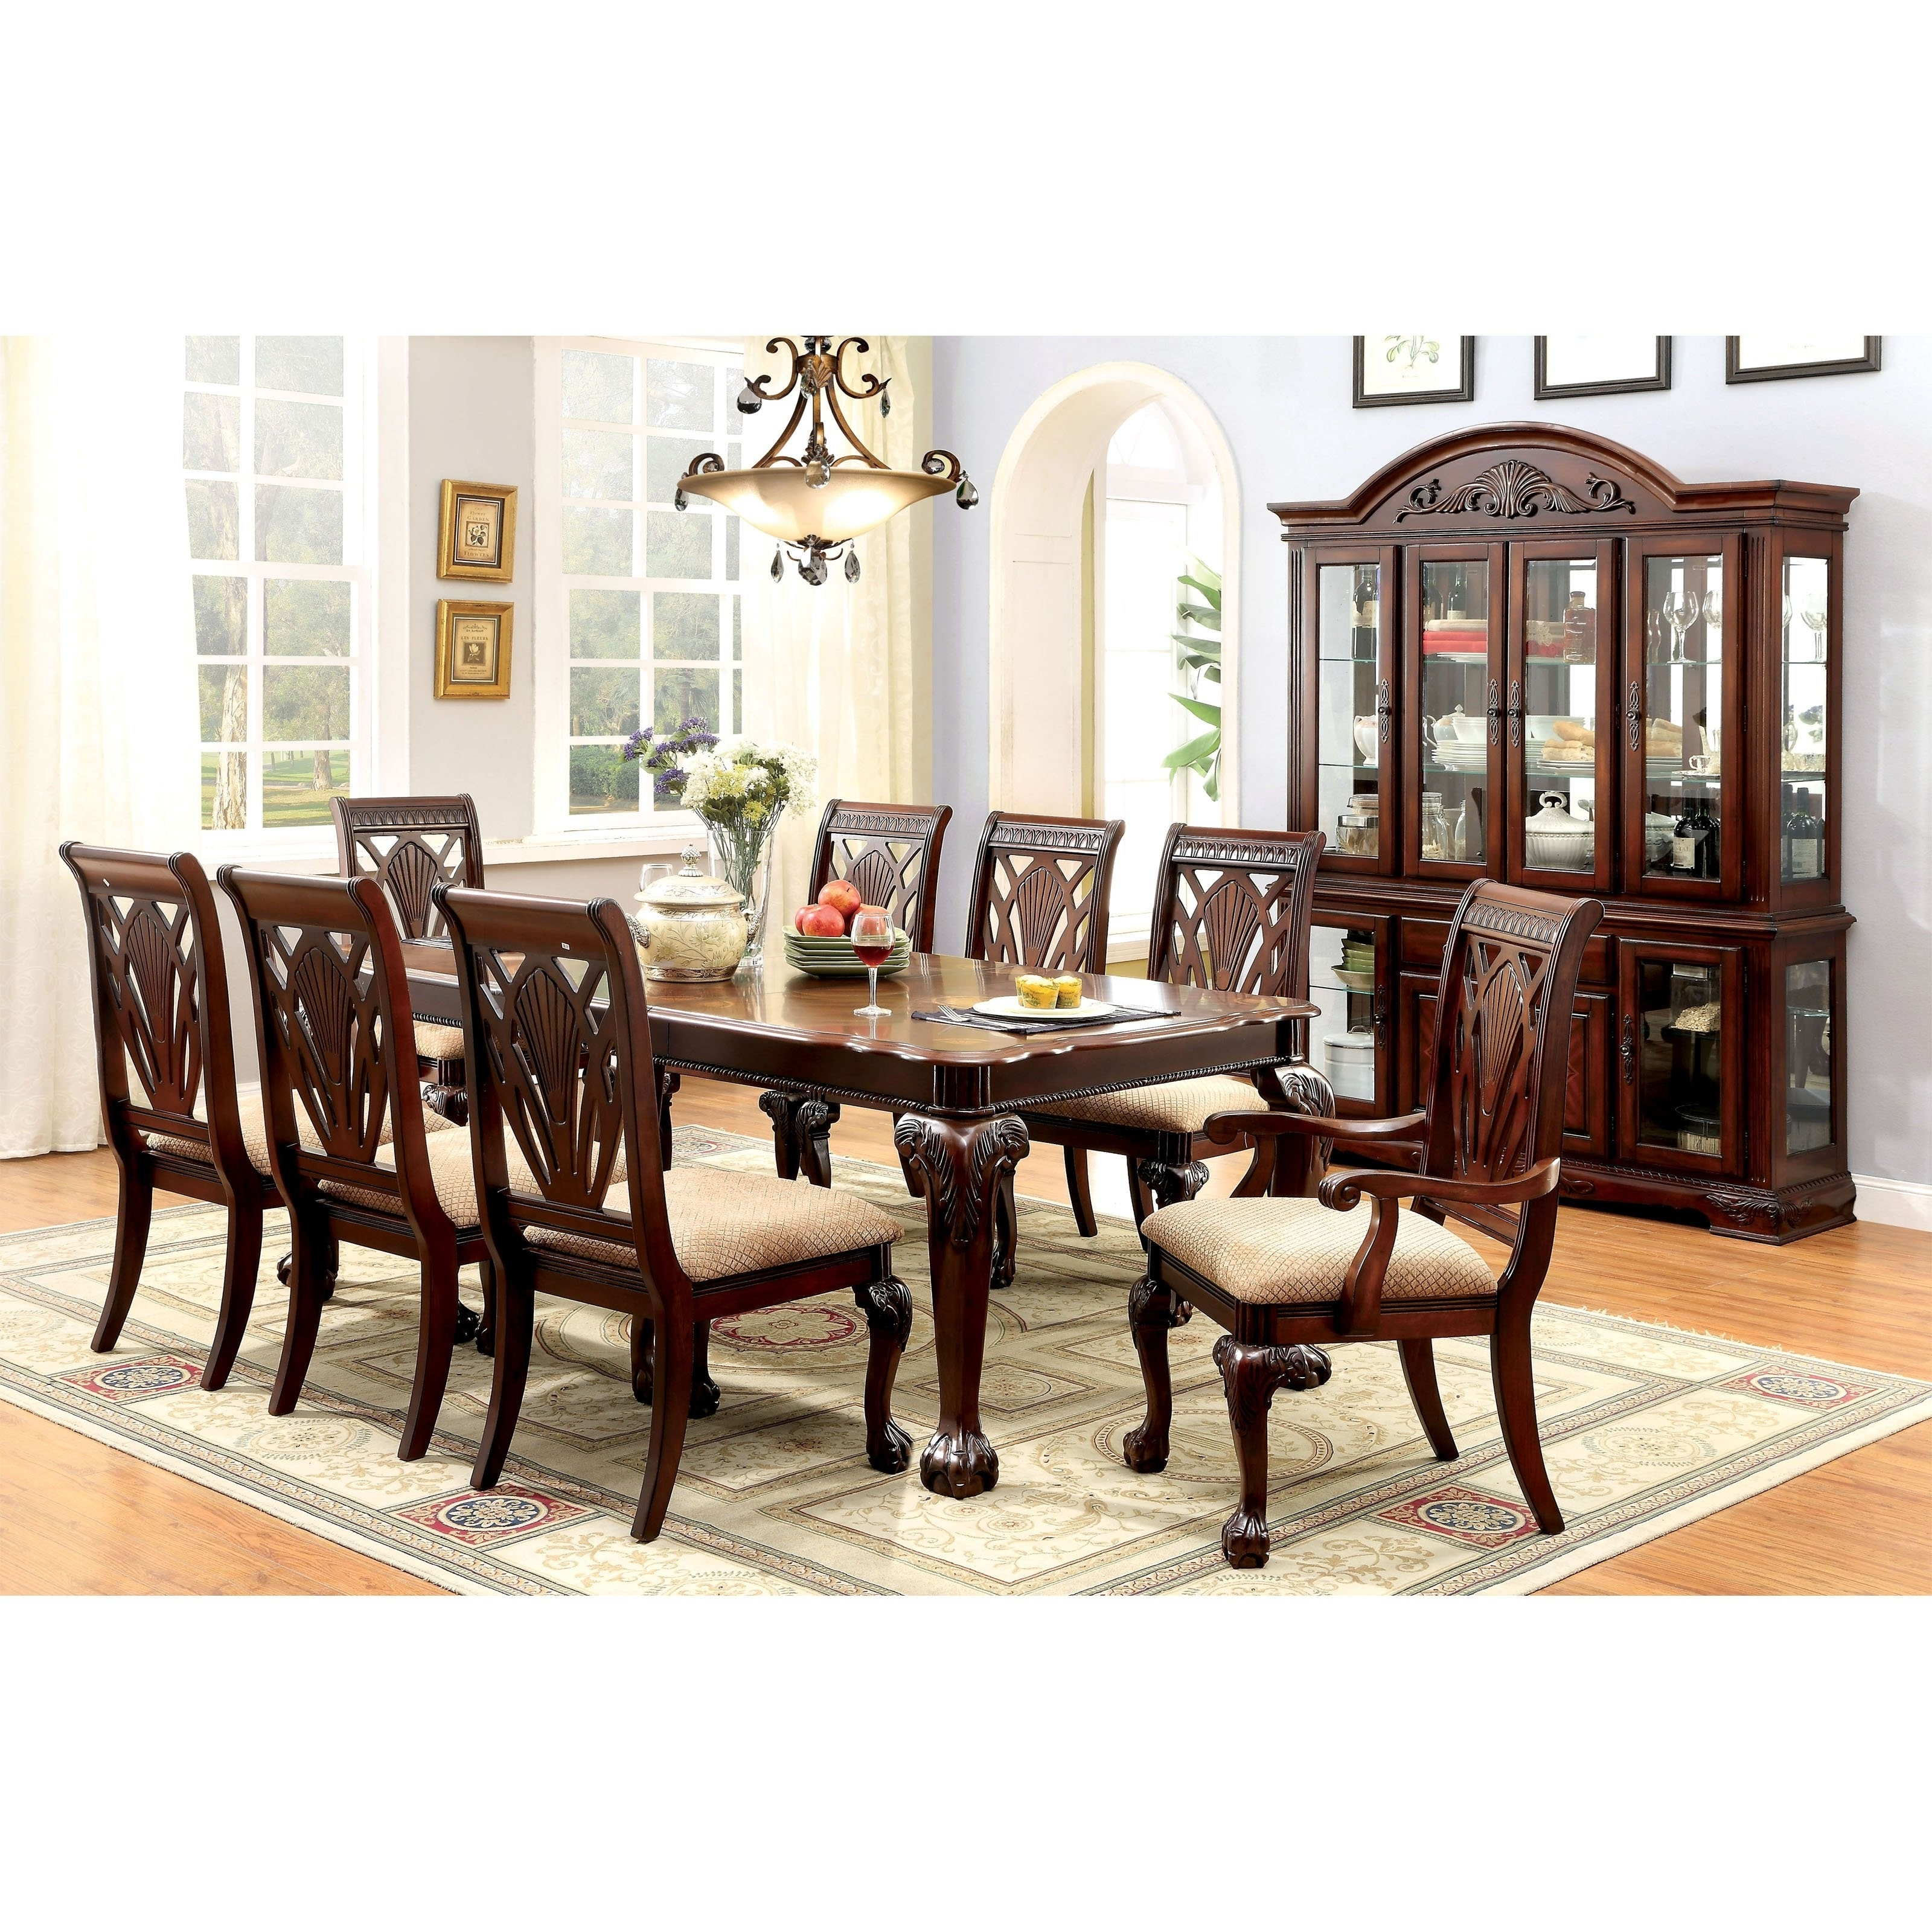 Chapleau Ii 9 Piece Extension Dining Table Sets Inside Trendy Cheery Caira Piece Extension Set Back Chairs Caira Piece Extension (View 13 of 25)